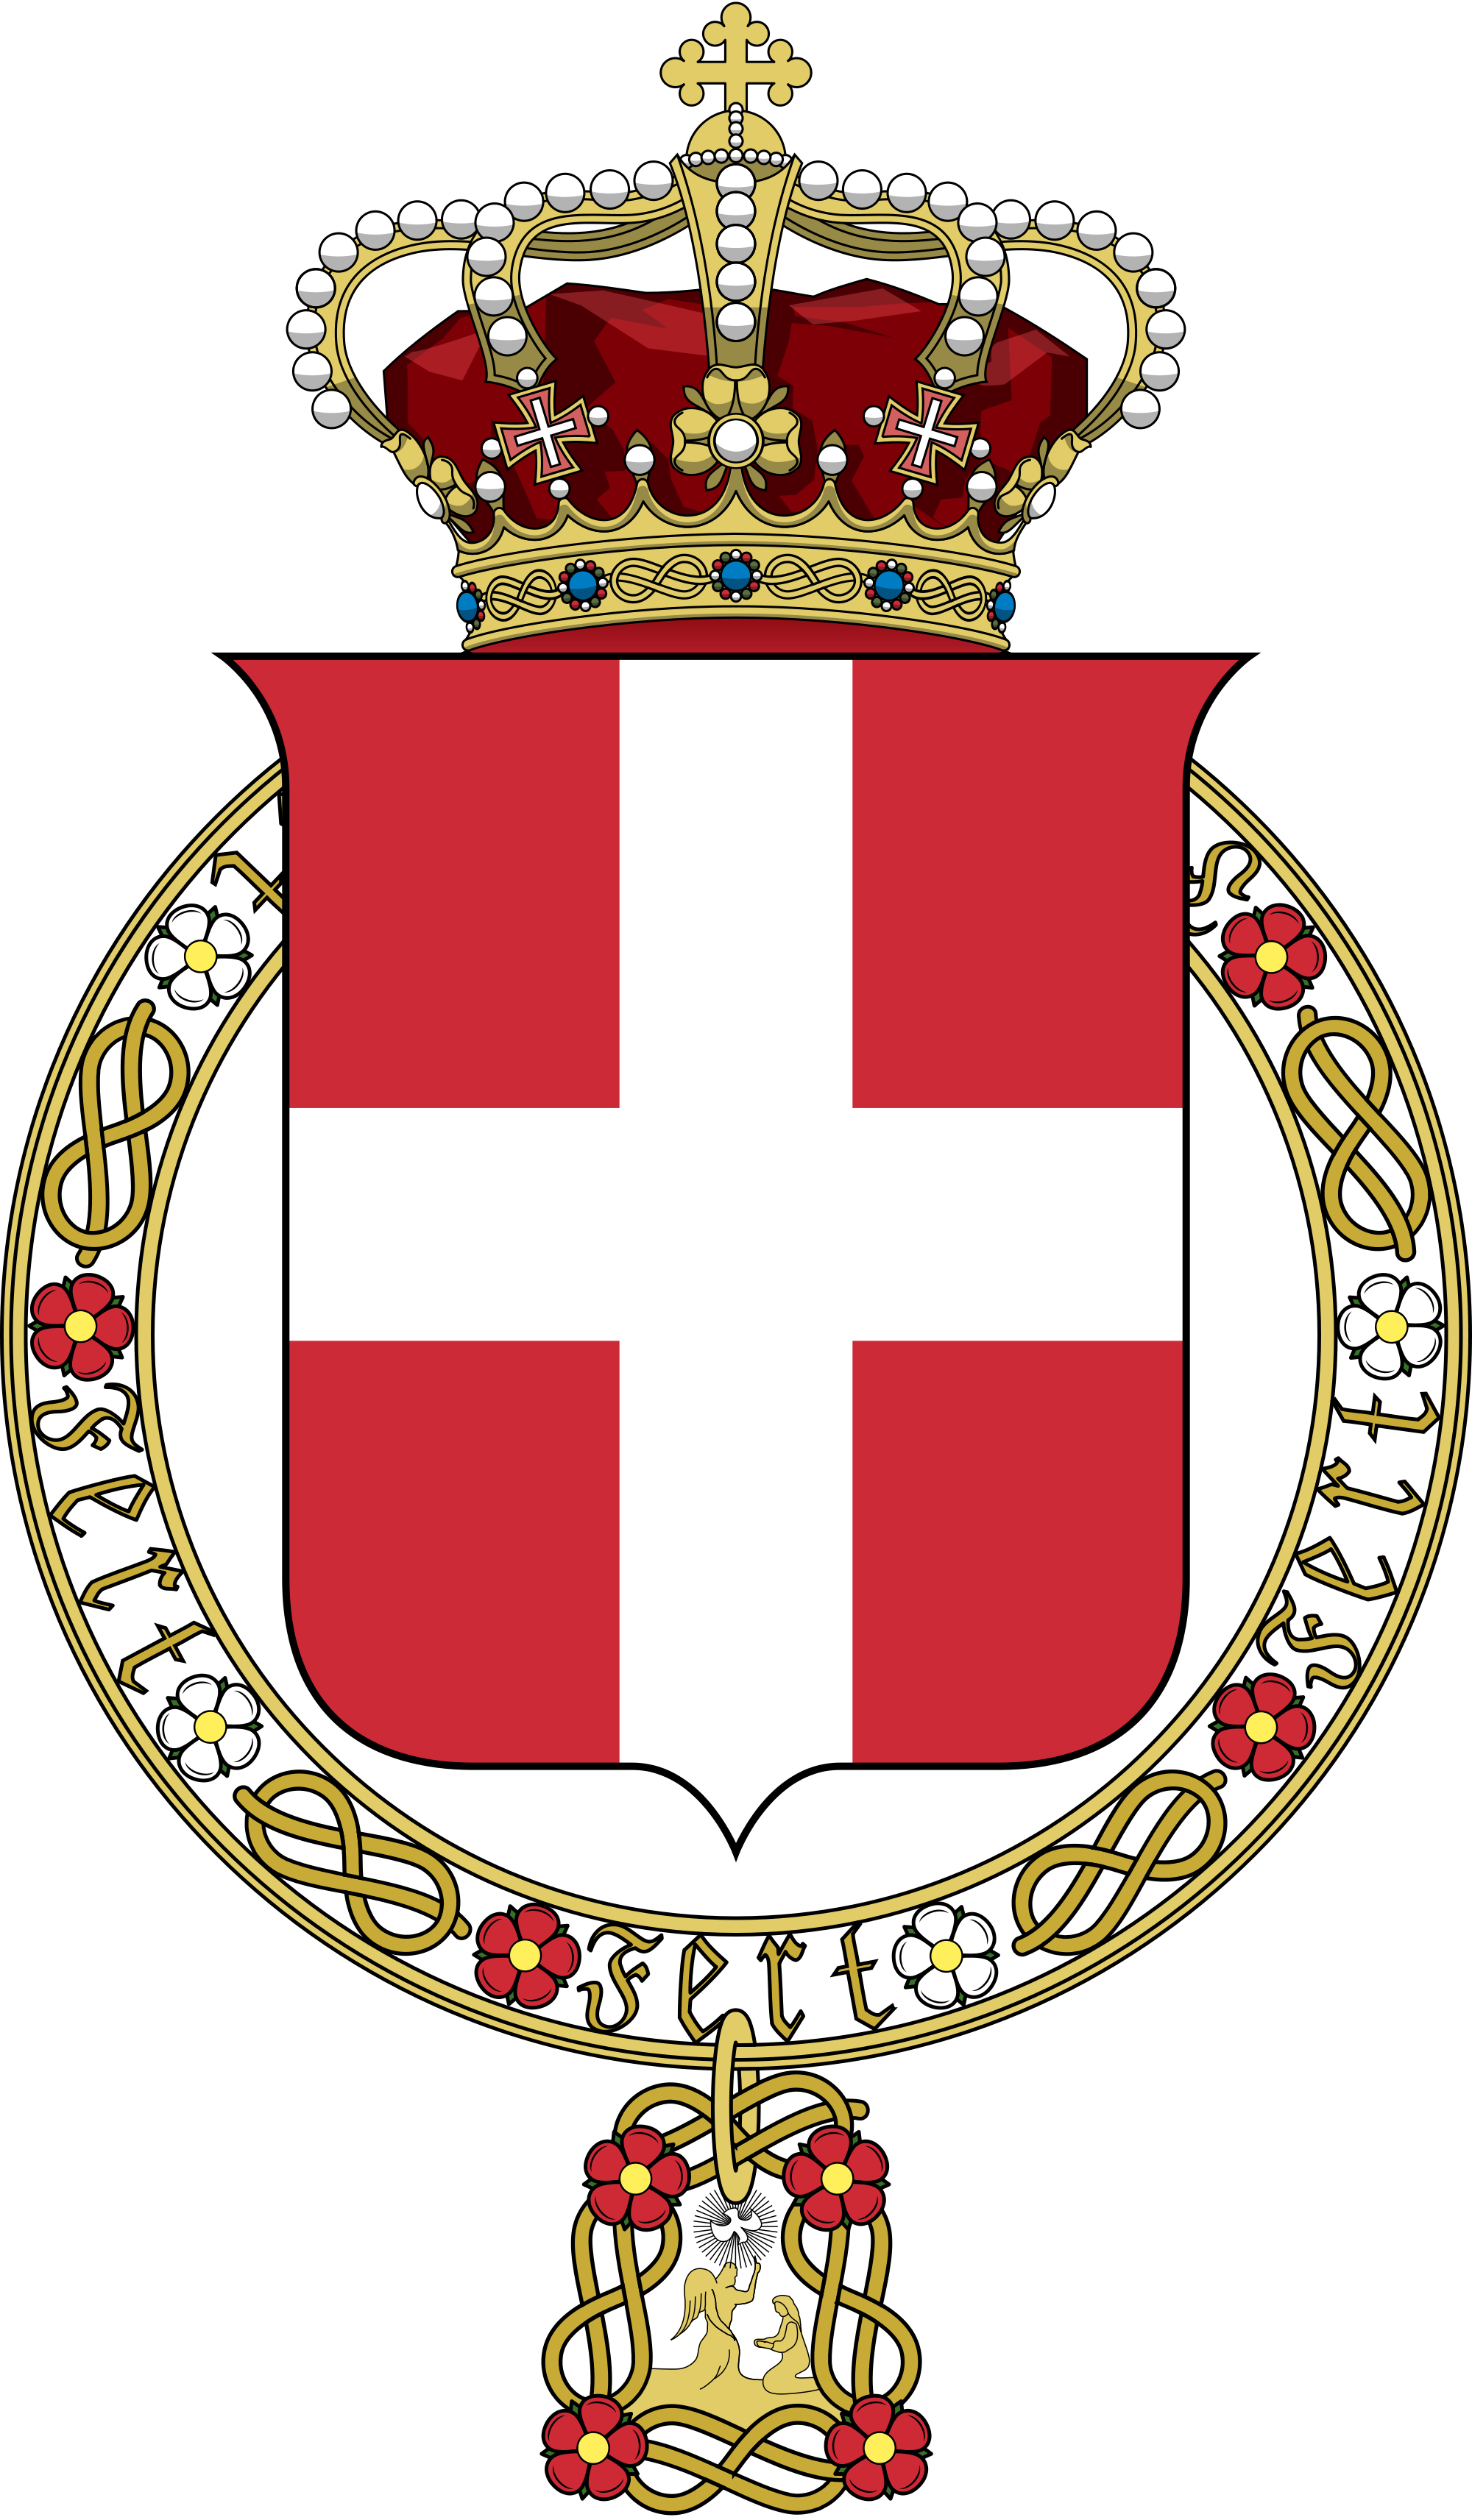 File:Lesser coat of arms of the Kingdom of Italy (1890).svg.